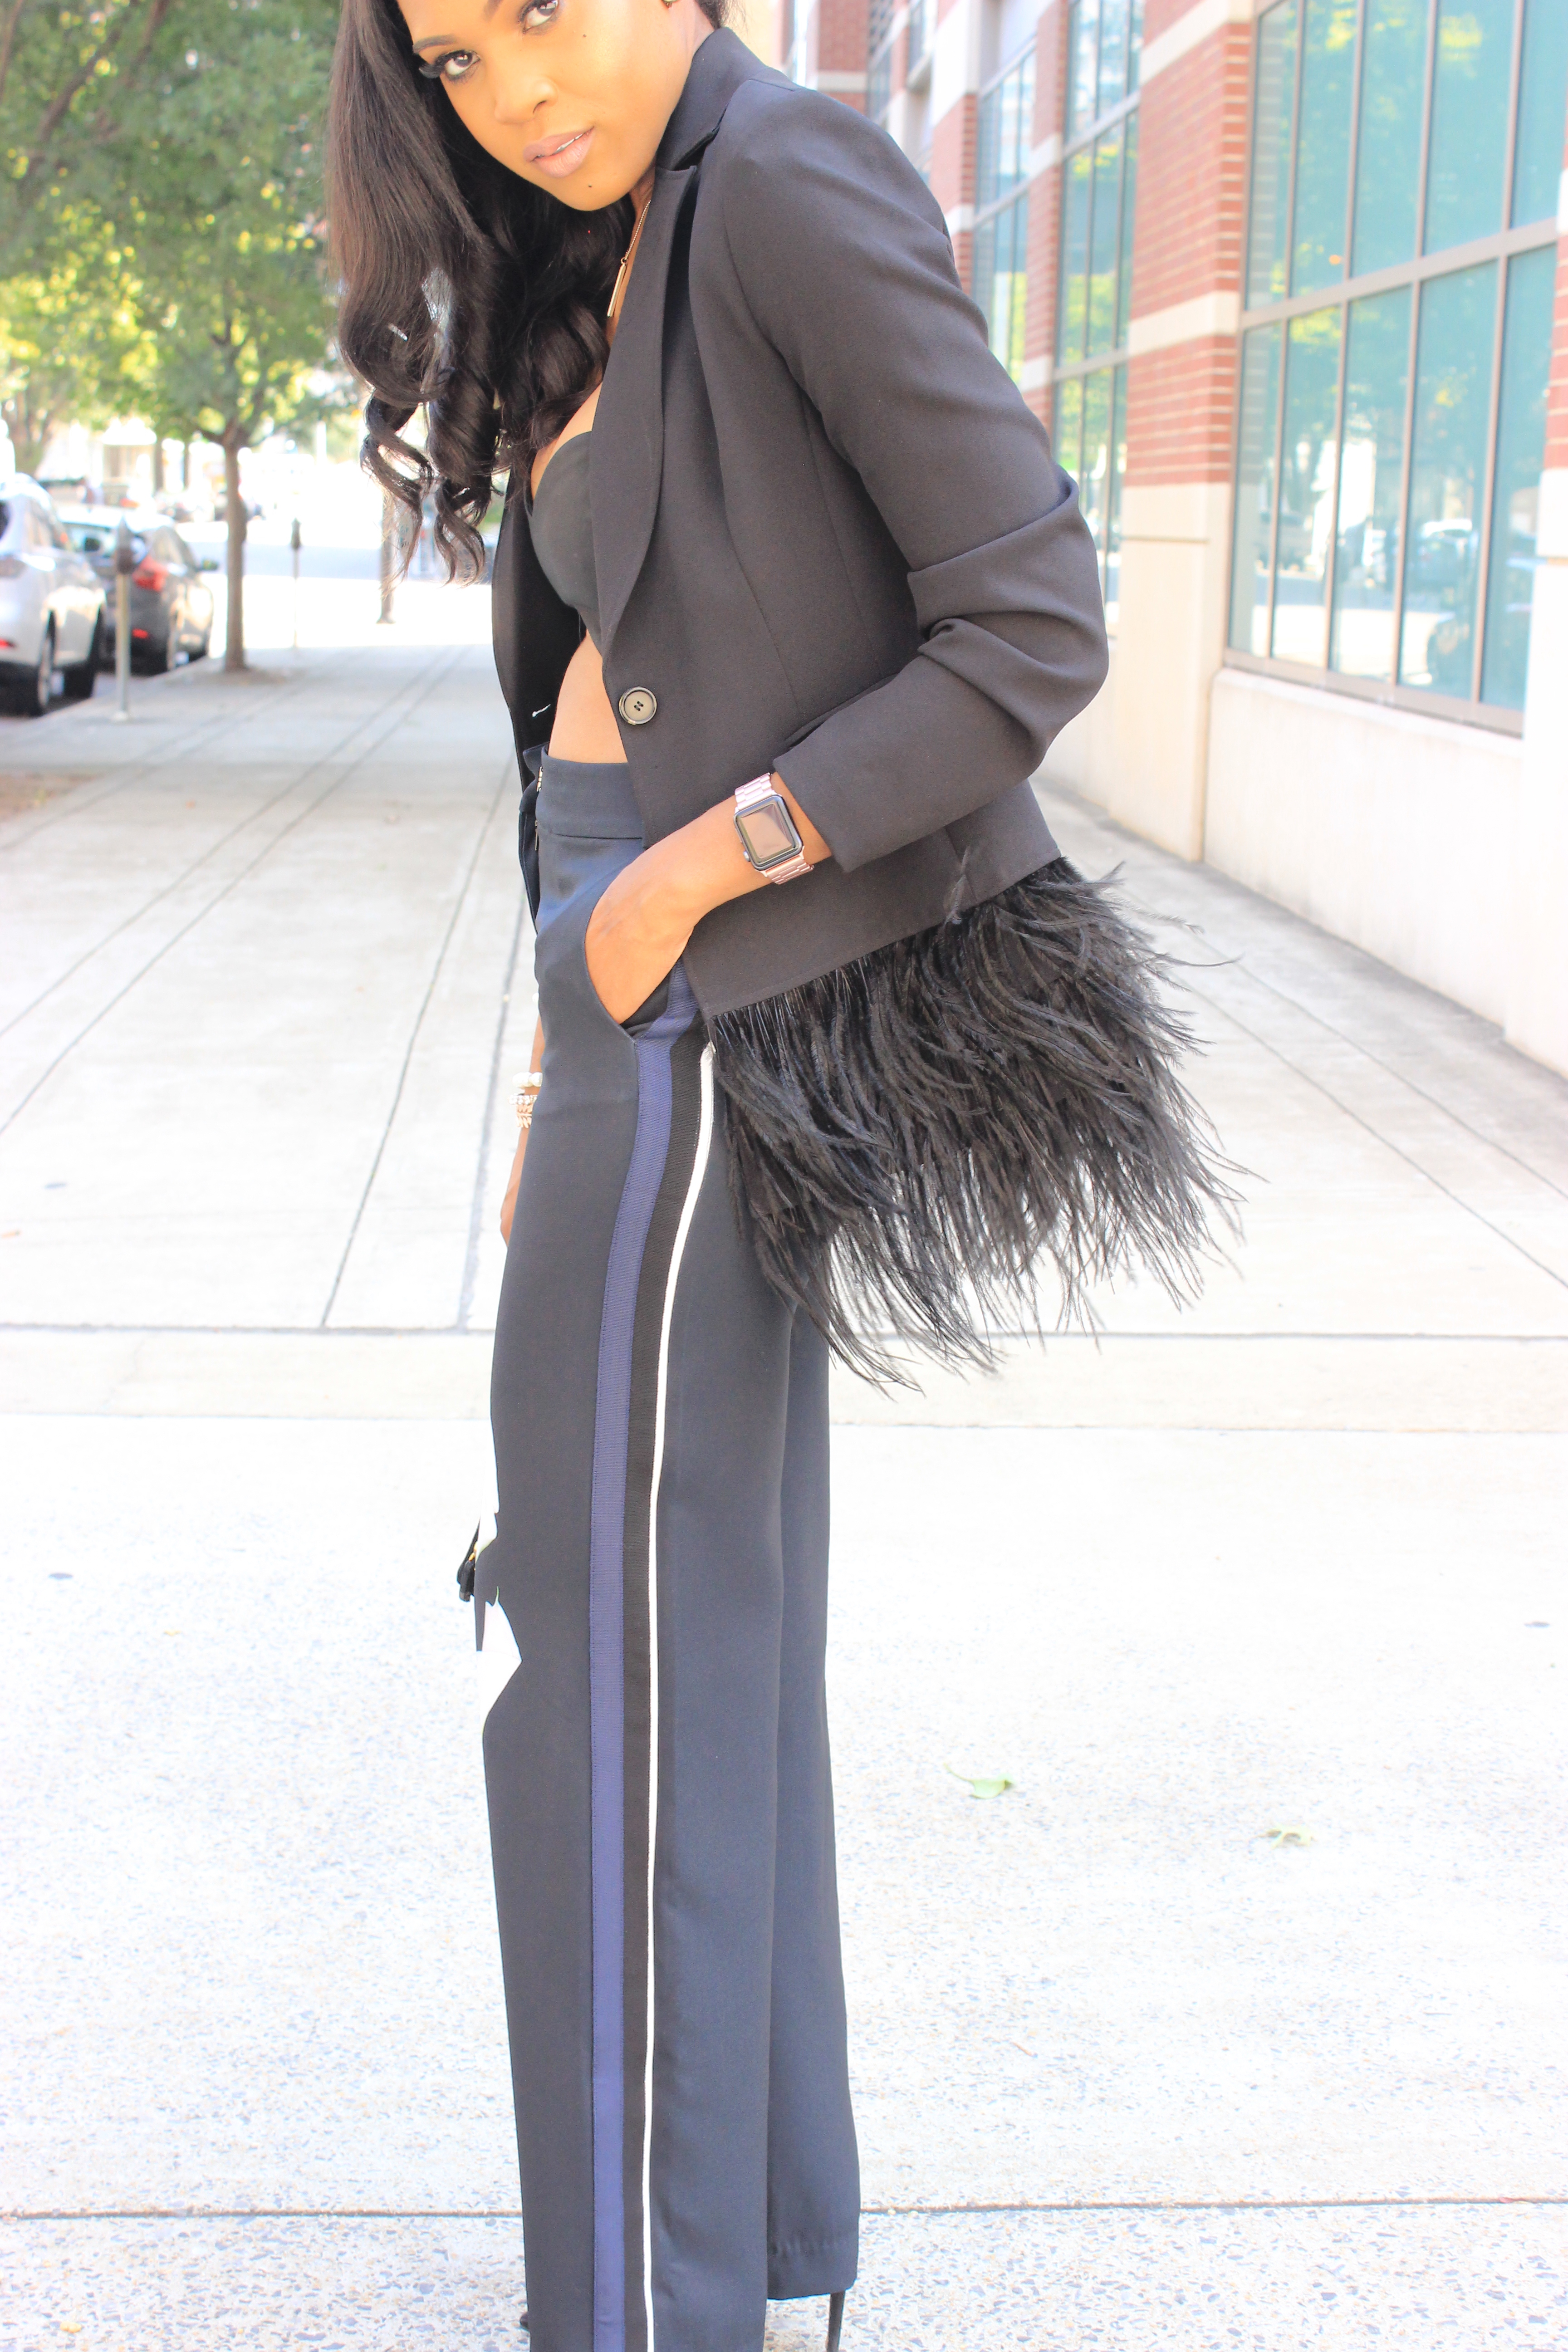 Style-files-Victoria-Beckham-for-Target-Black-Satin-Calla-Lily-Wide-Leg-Pant-nasty-gal-bandeau-top-zara-clear-pvc-pumps-Gianni Bini-Lizzy-Notch-Lapel-Collar-Feather-Trim-Solid-Crepe Blazer-oohlalablog-36